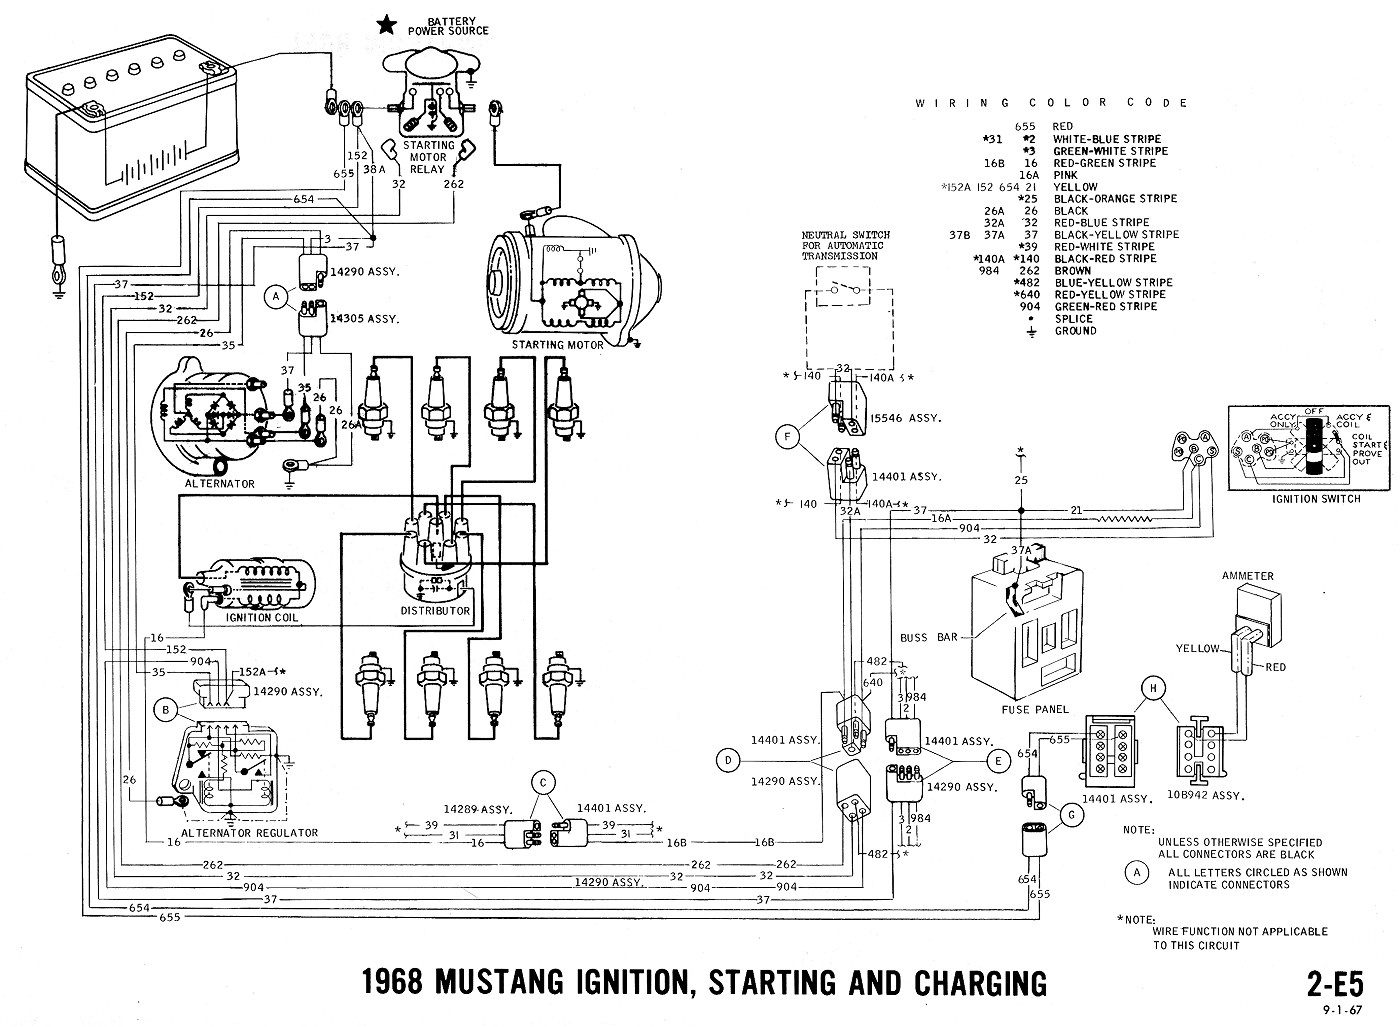 1984 Ford F350 Wiring Harness Diagrams Simple Guide About 2010 Light Diagram 1968 Mustang Evolving Software